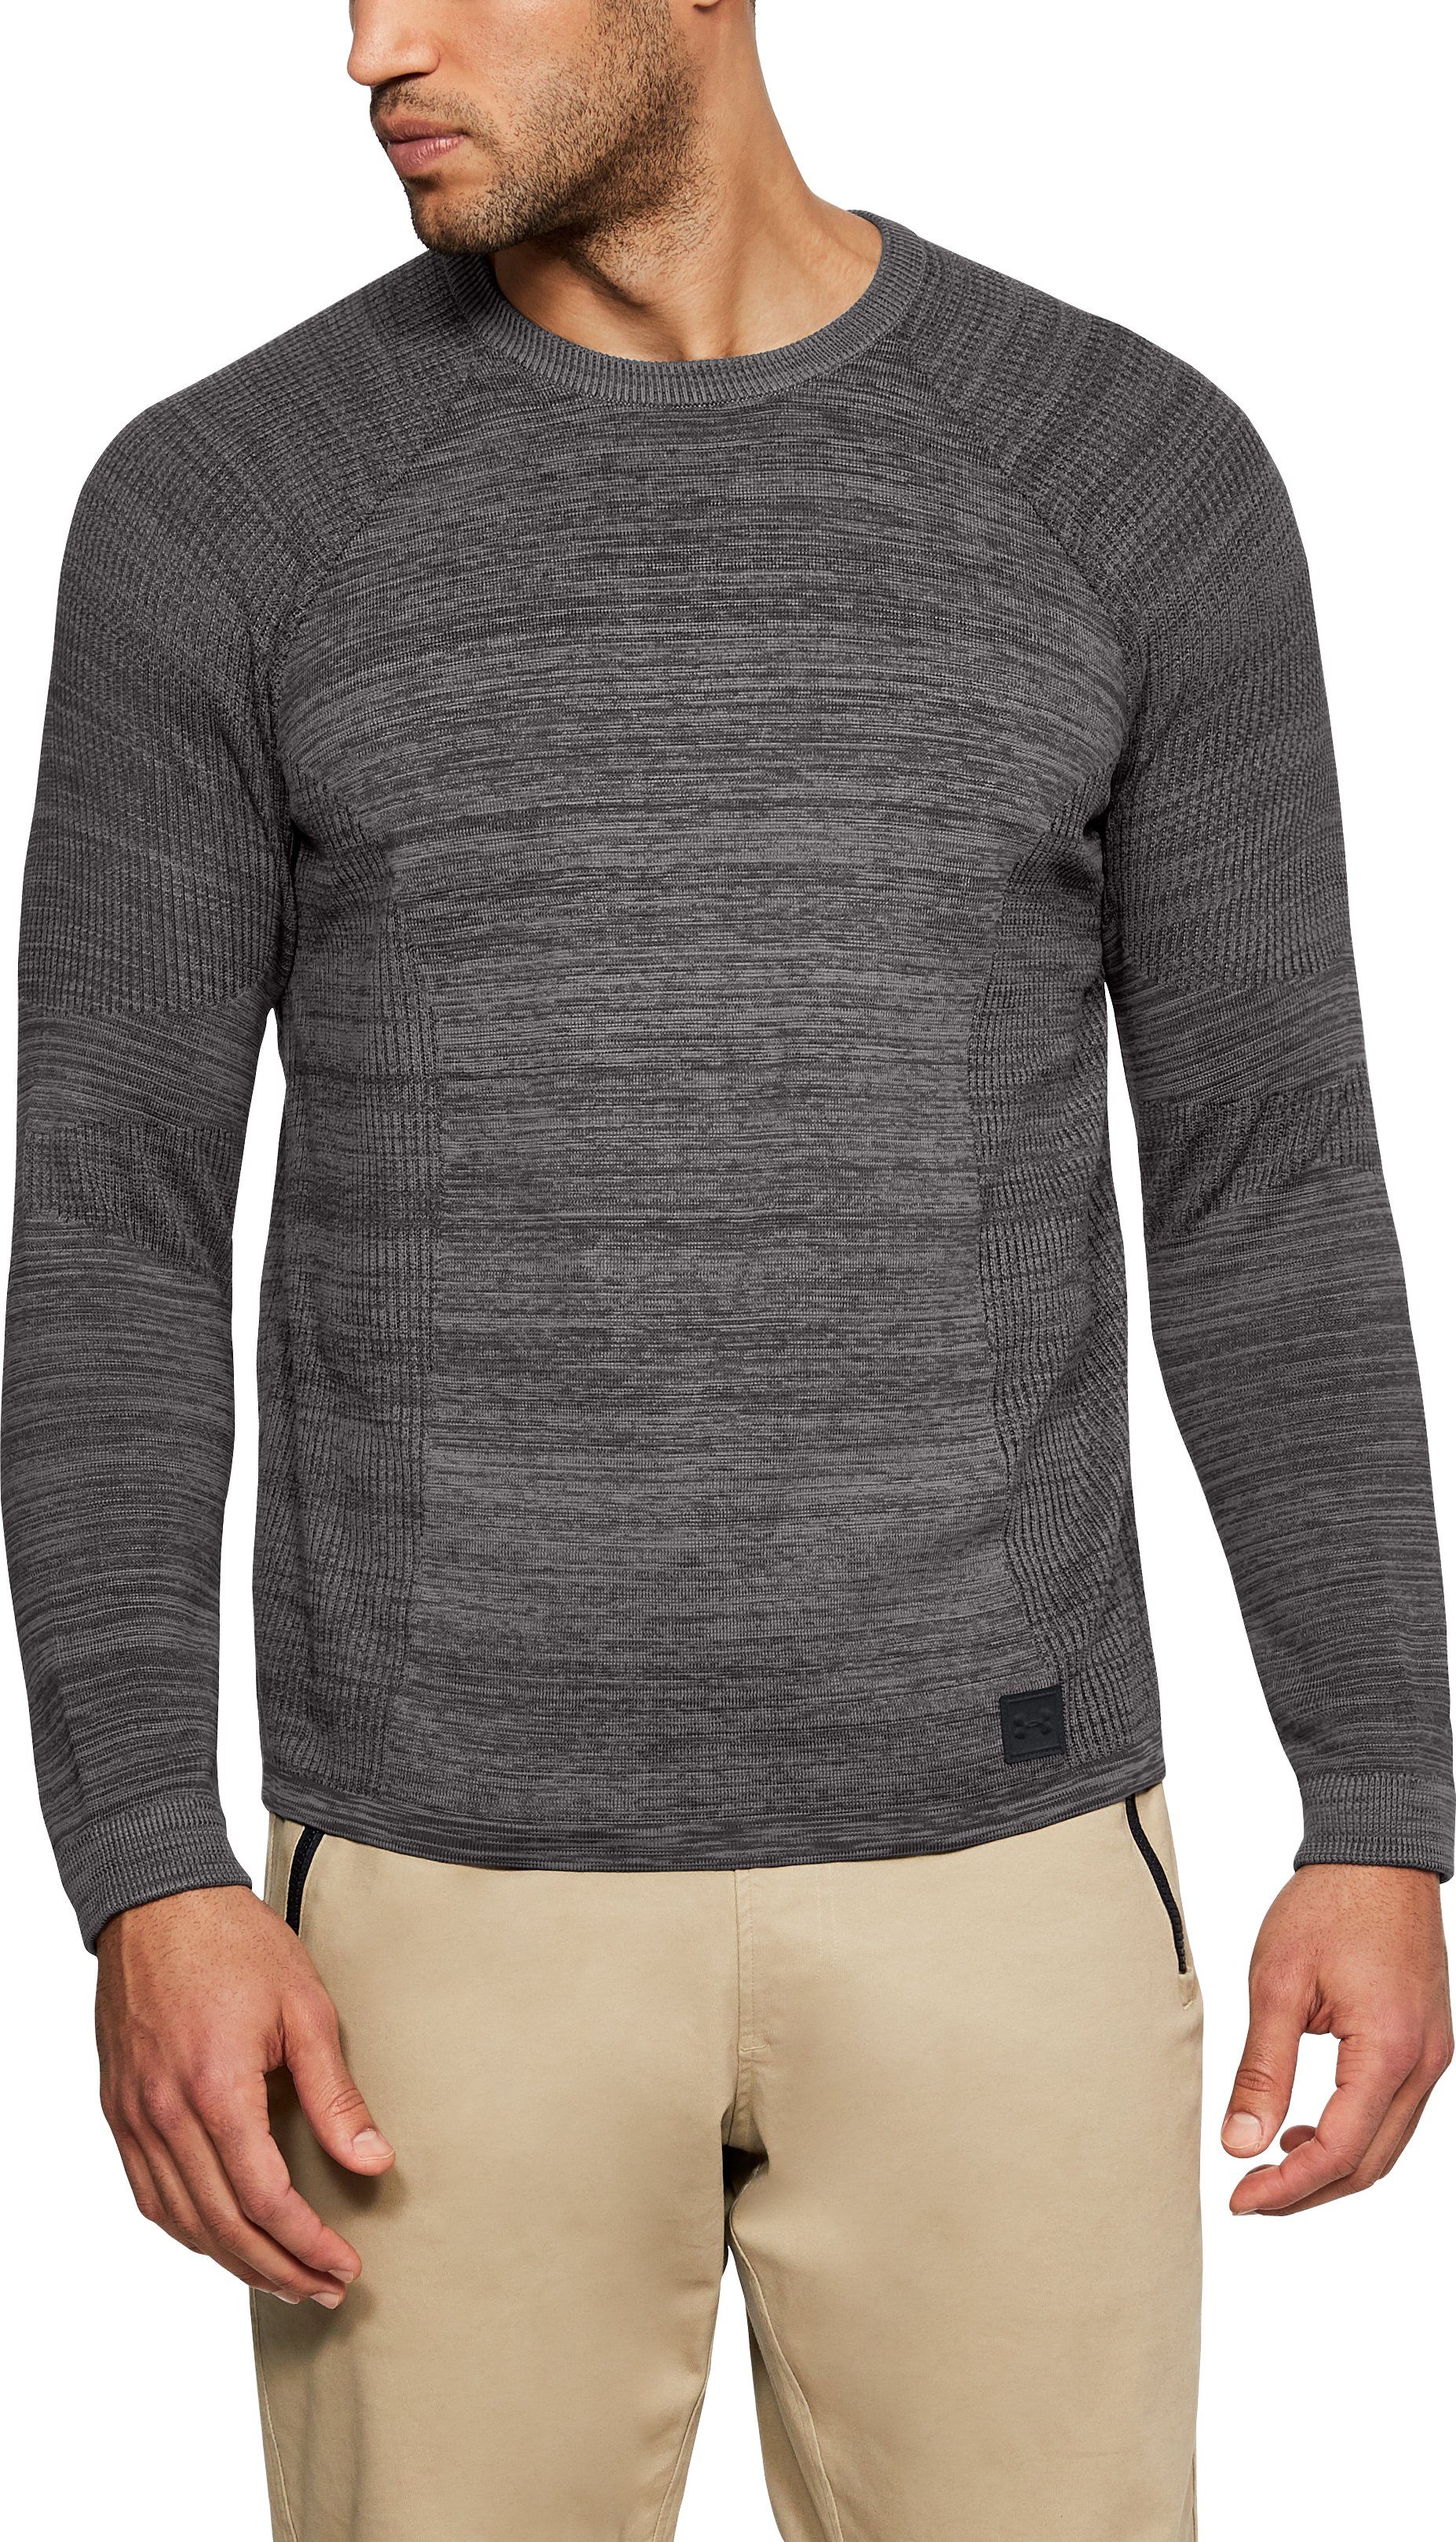 medium sweaters Men's UA Sportstyle Sweater Amazing quality but not fitted...This sweater has amazing quality and I love the design.